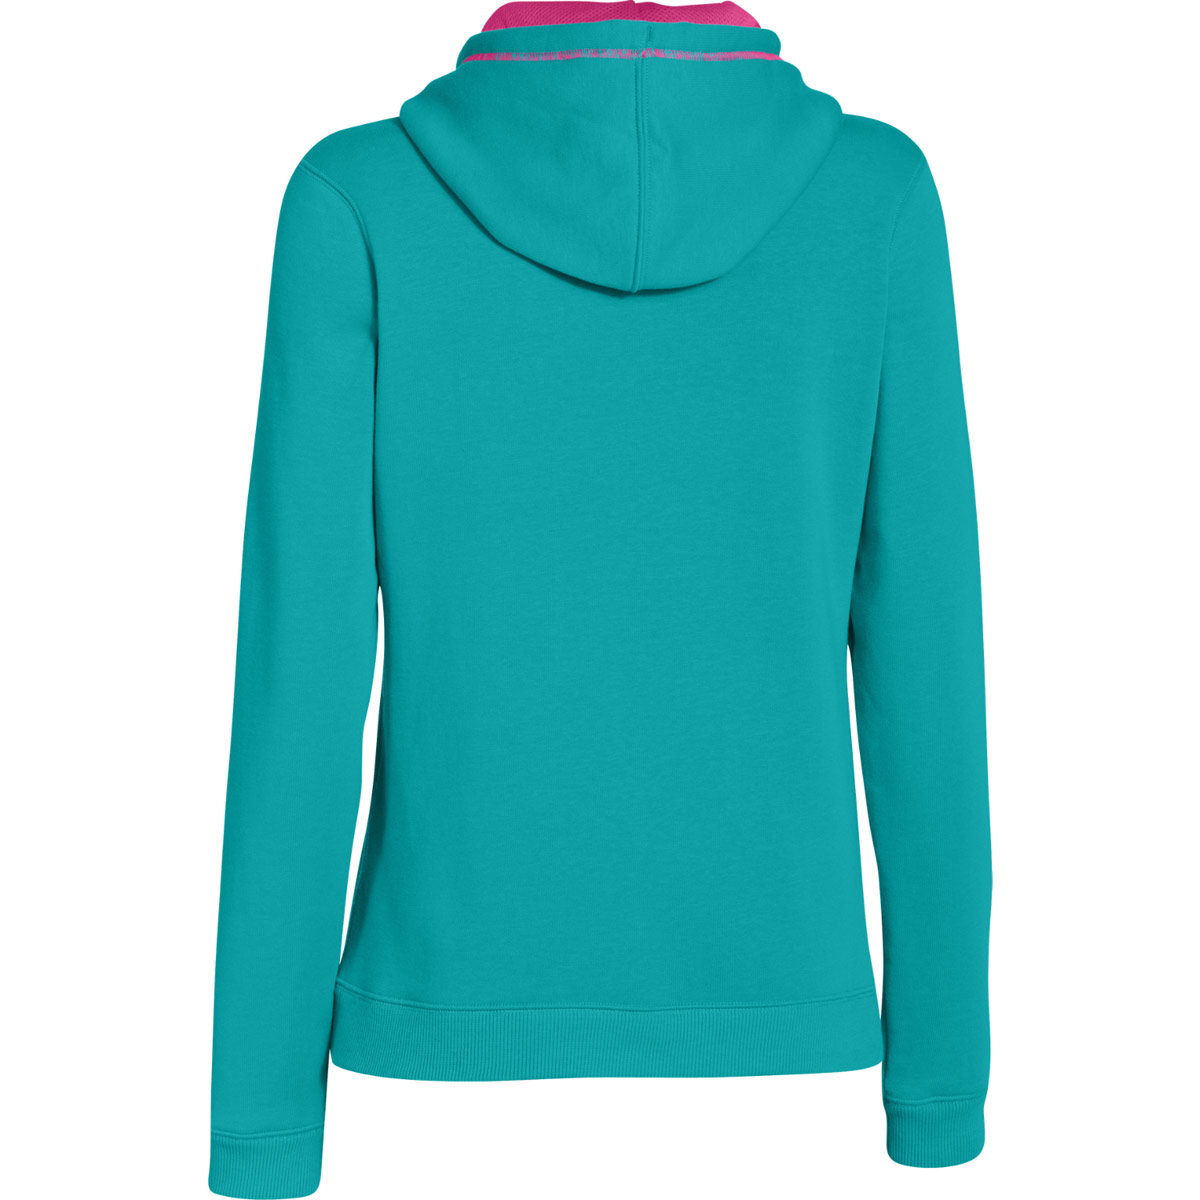 Under Armour Women's UA Rival Cotton Hoody